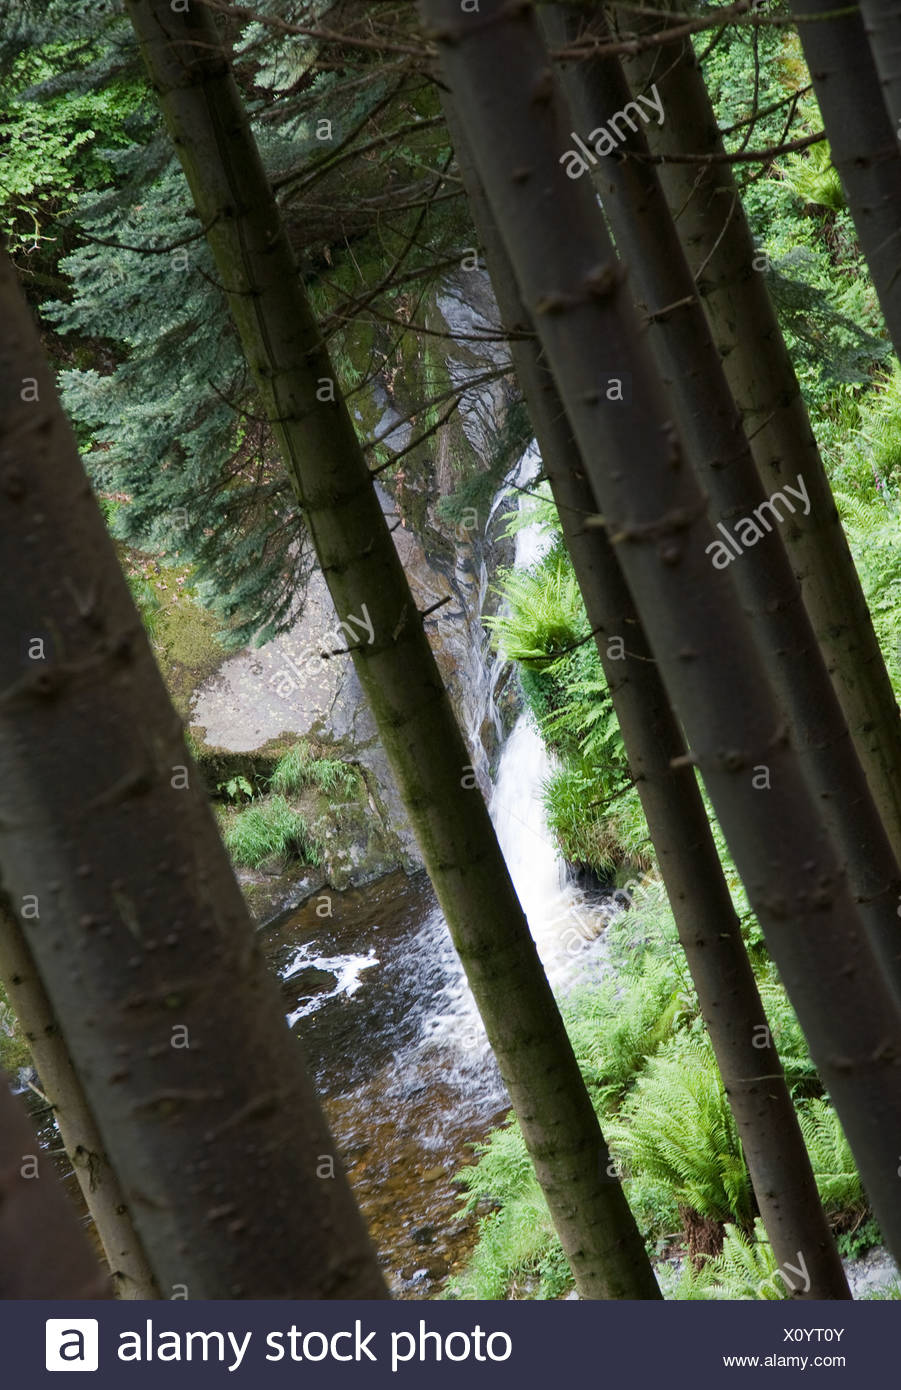 es, The Peiran Falls, seen through the trees Hafod, in the remote and then almost inaccessible Ystwyth valley in mid Wales, was - Stock Image